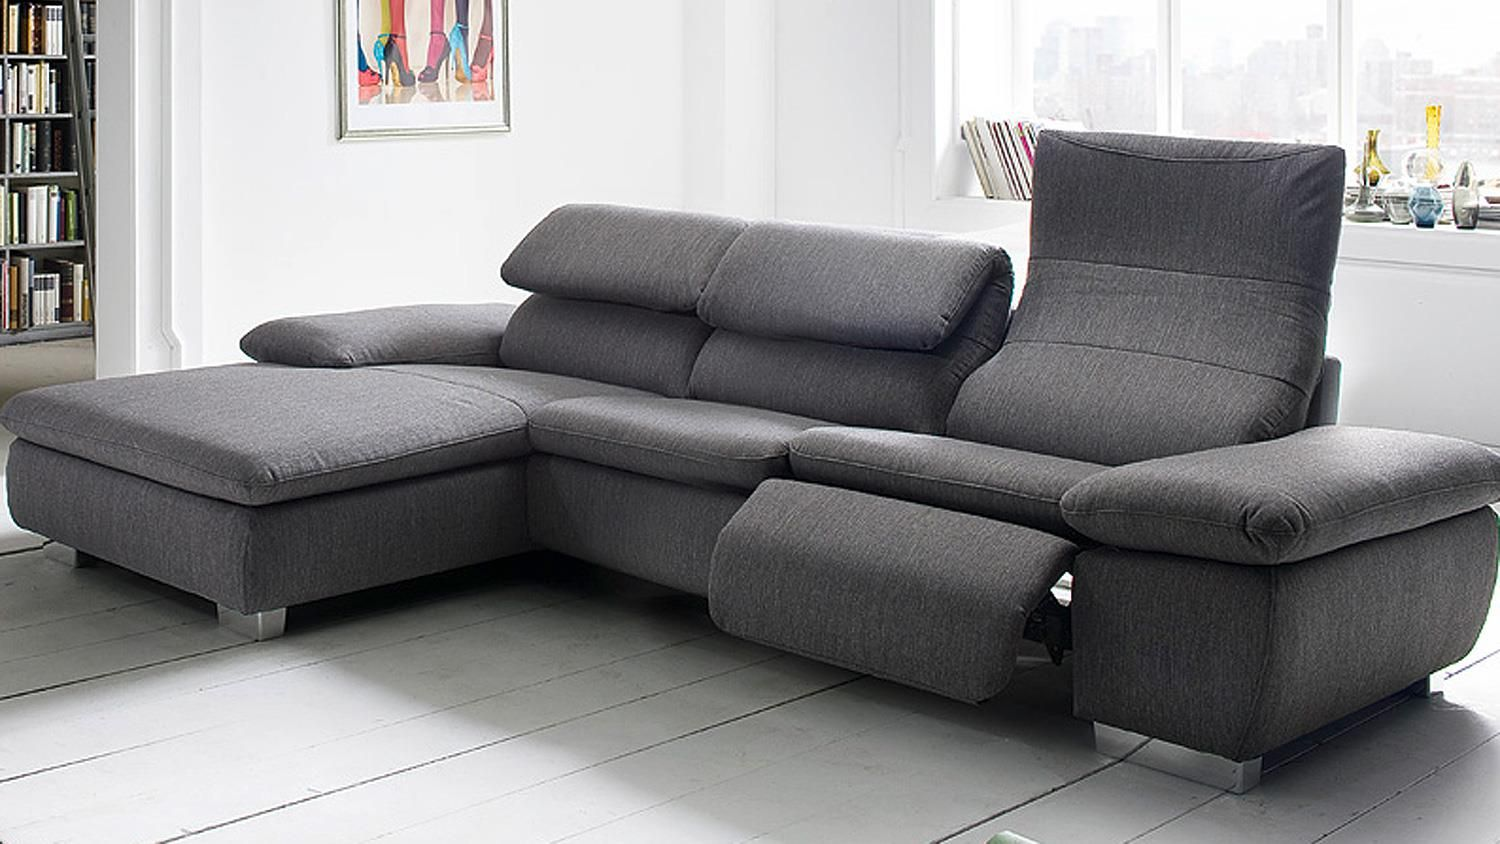 Couch Mit Relaxfunktion | Dekoration Ideen